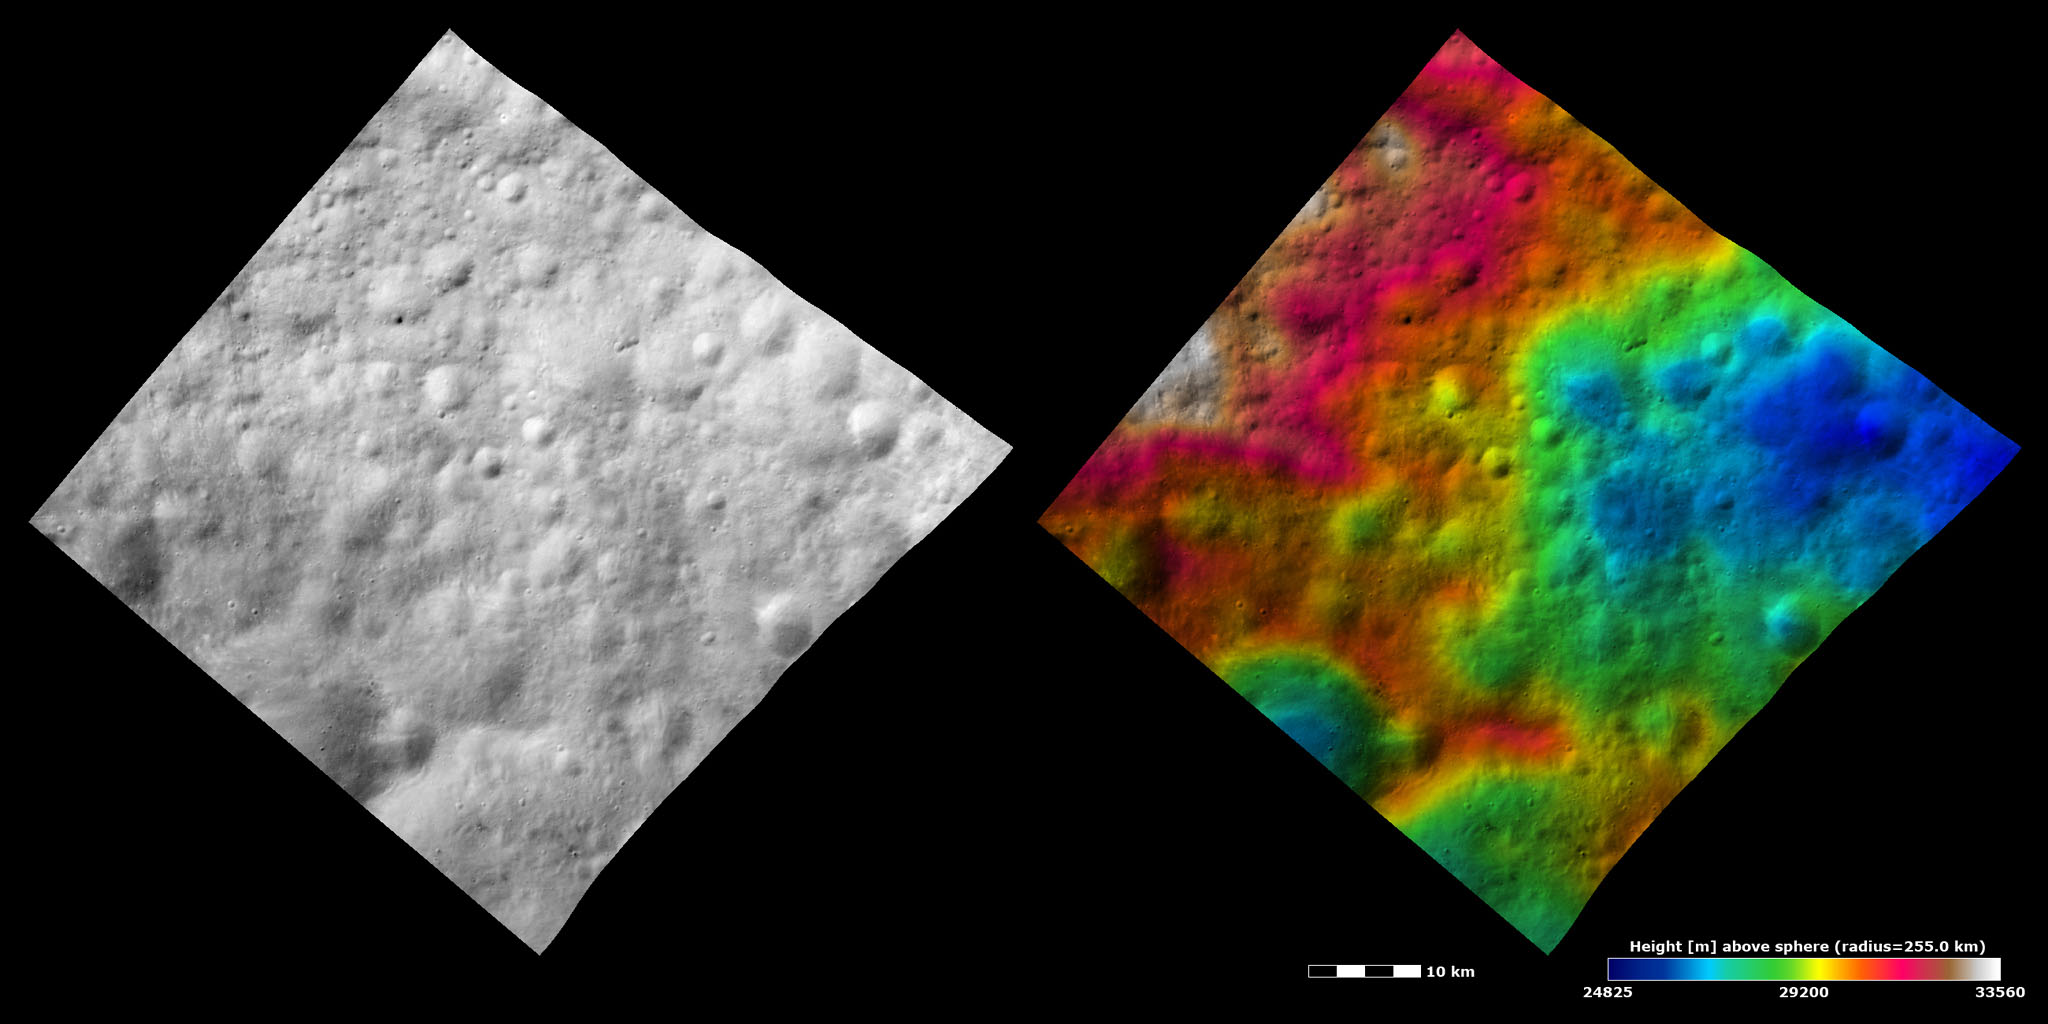 Topography and Albedo Image of Ancient Terrain with Ruined Crater